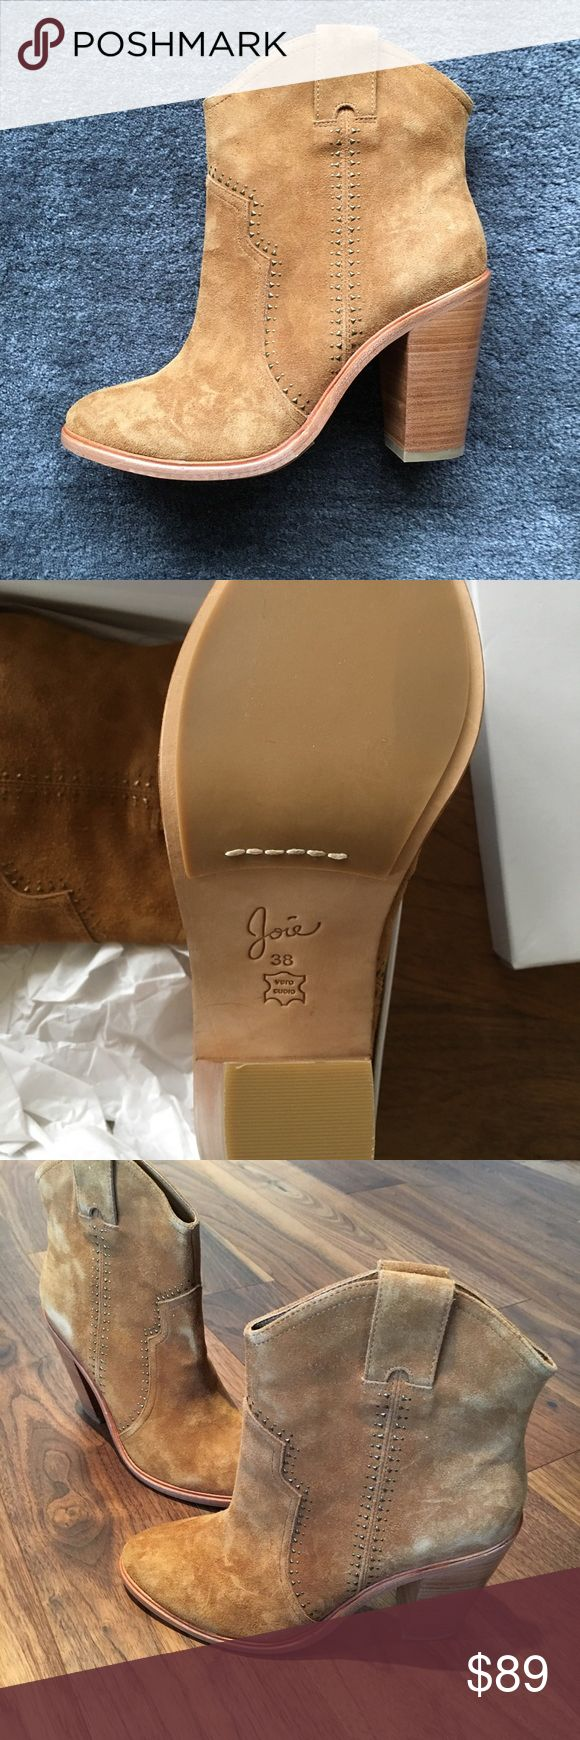 Joie ankle boots. Whiskey suede. Never worn! Joie ankle boots. Whiskey color, burnished suede. Brand new, Never worn! Perfect Condition, not a single scuff on soles or bottom. Very cute gold sequins line the leather. Size 8/Euro size 38. Joie Shoes Ankle Boots & Booties